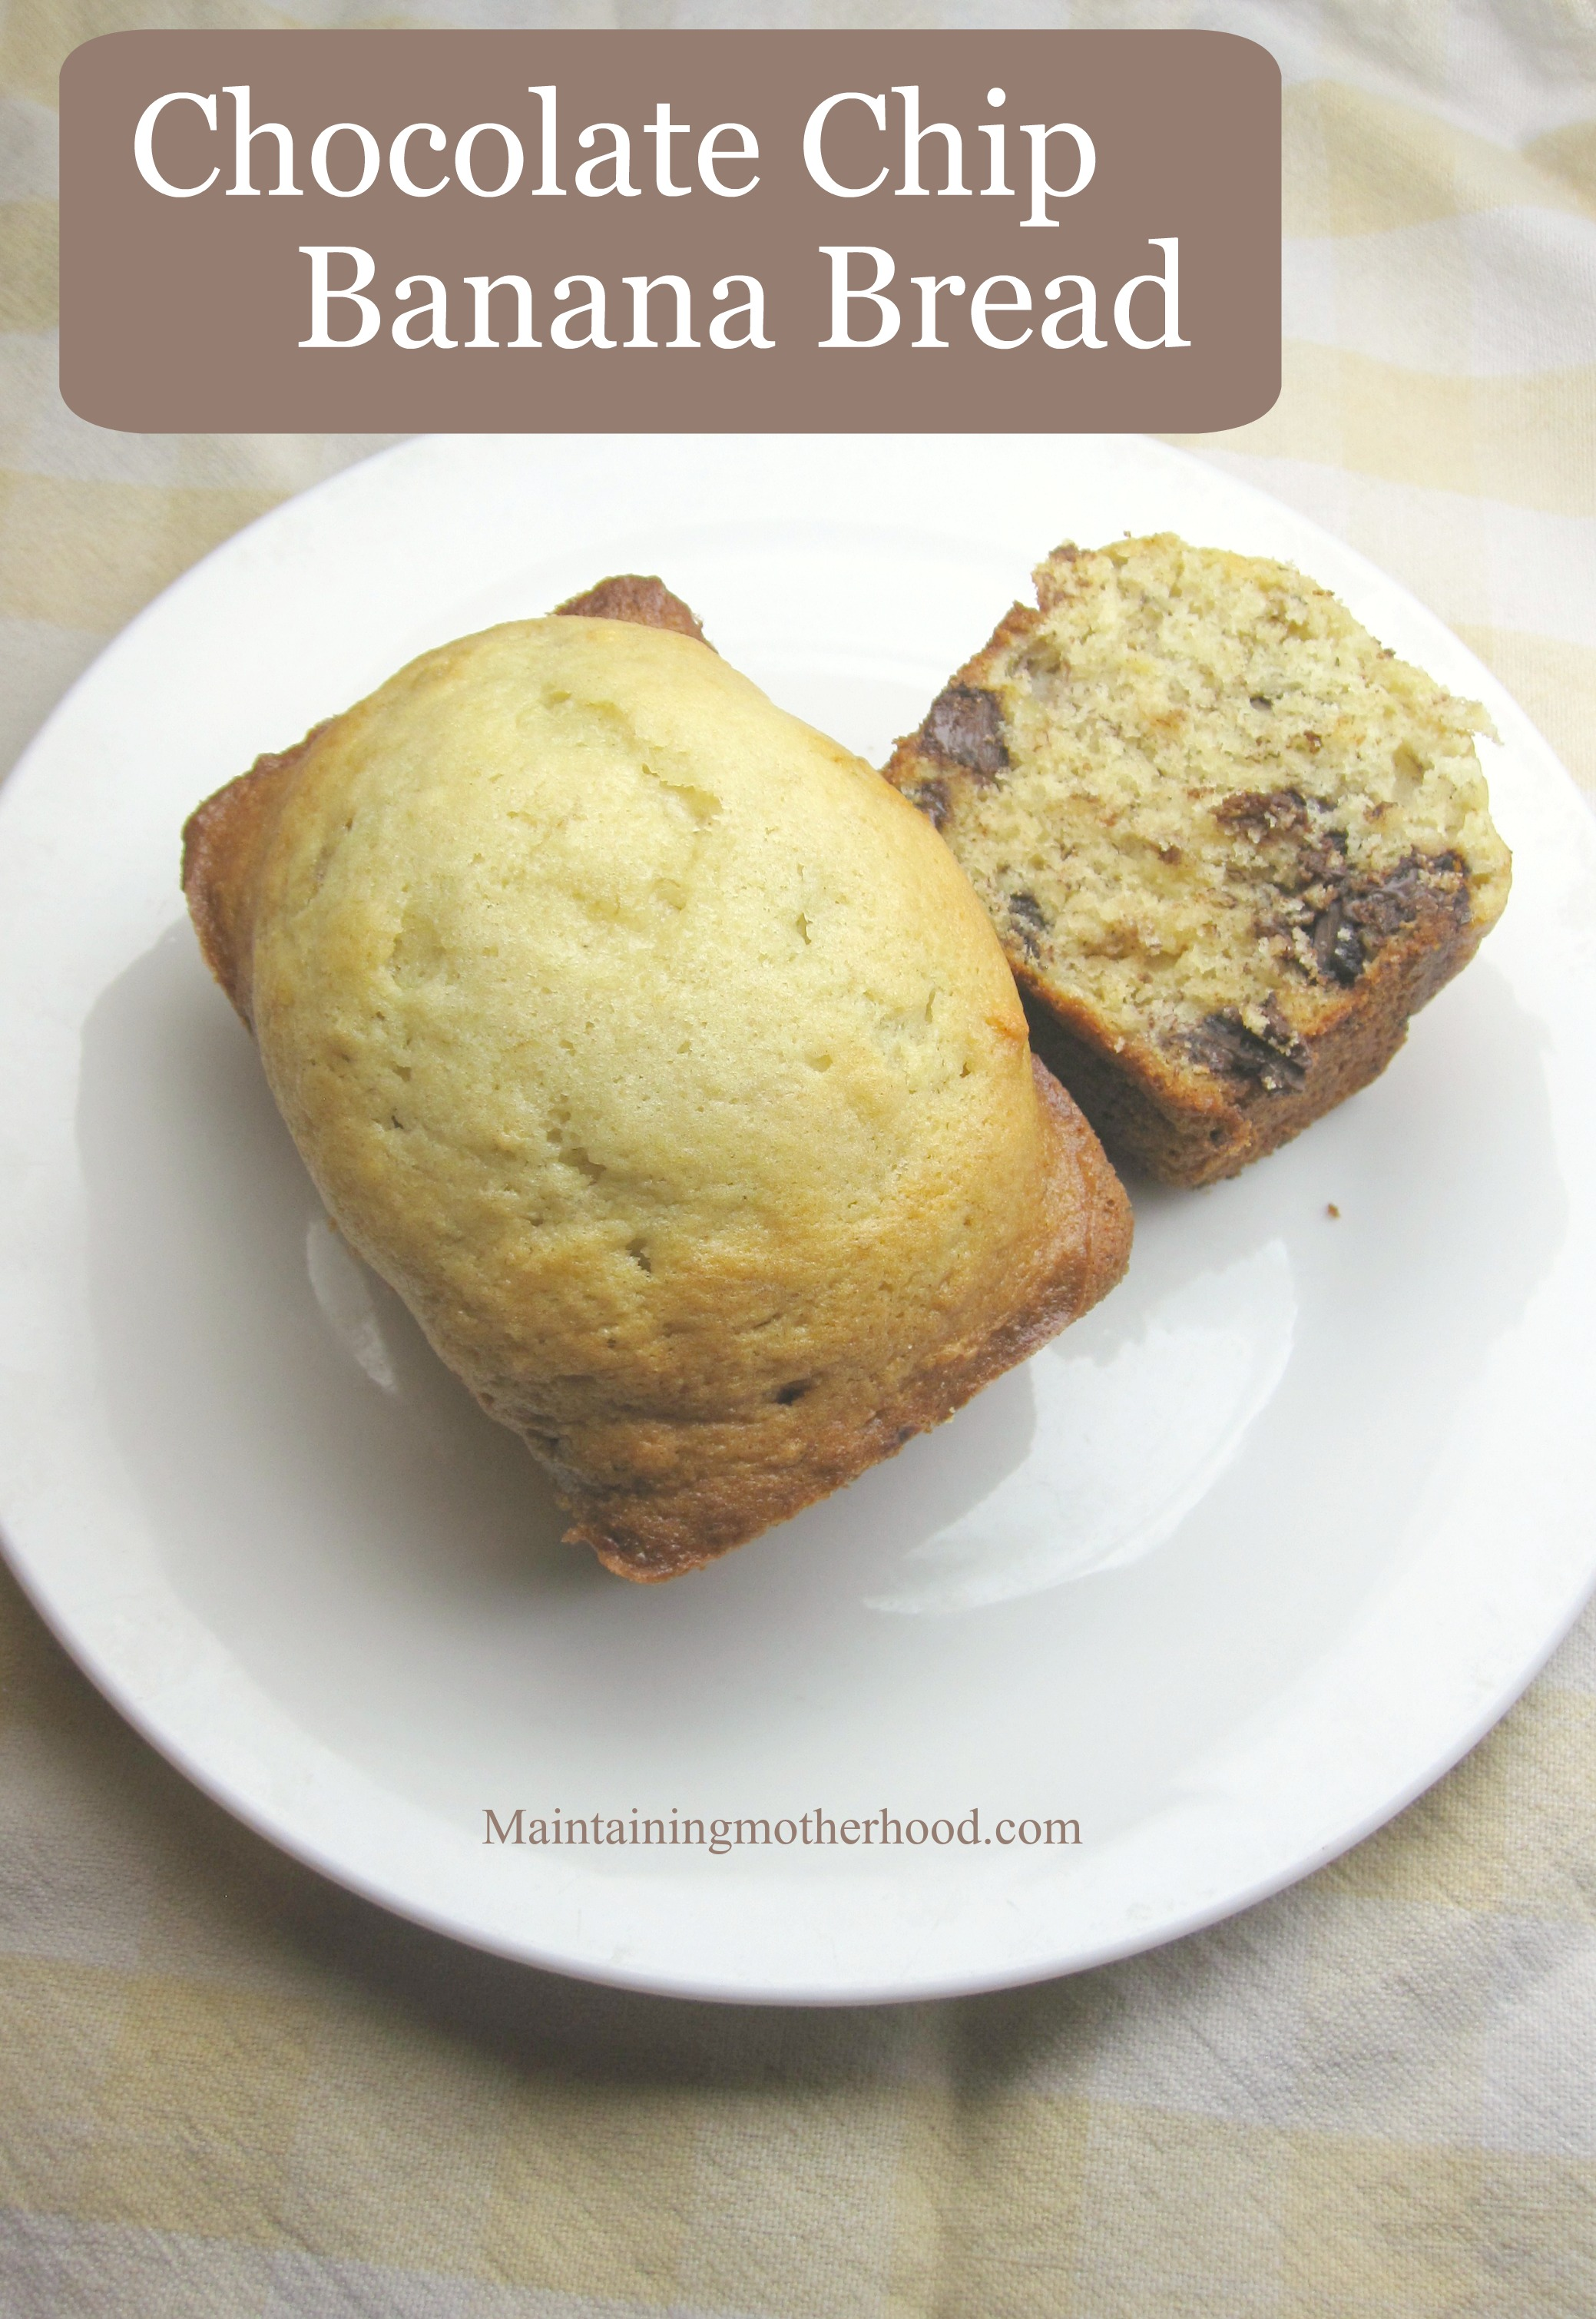 If you love fresh banana bread in the perfect size, this is the recipe for you! This Chocolate Chip Banana Bread cooked in mini loaf pans is delicious!